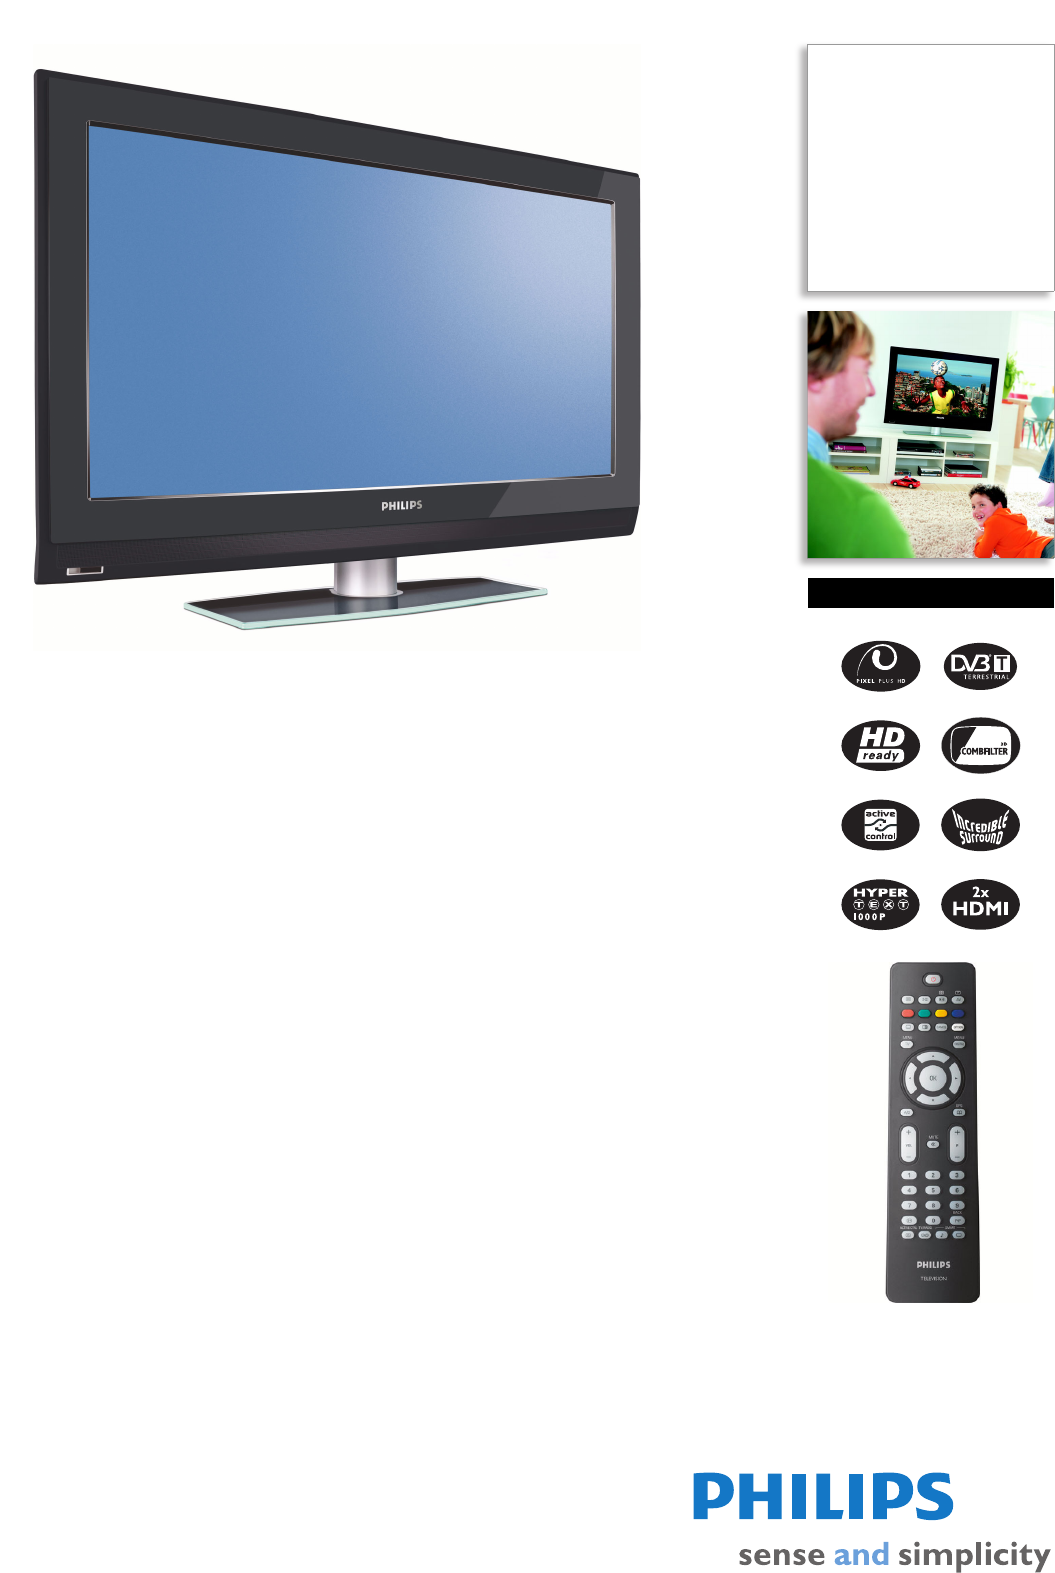 philips flat panel television 32pfl5522d user guide manualsonline com rh tv manualsonline com Philips Universal Remote User Manual Philips Universal Remote User Manual